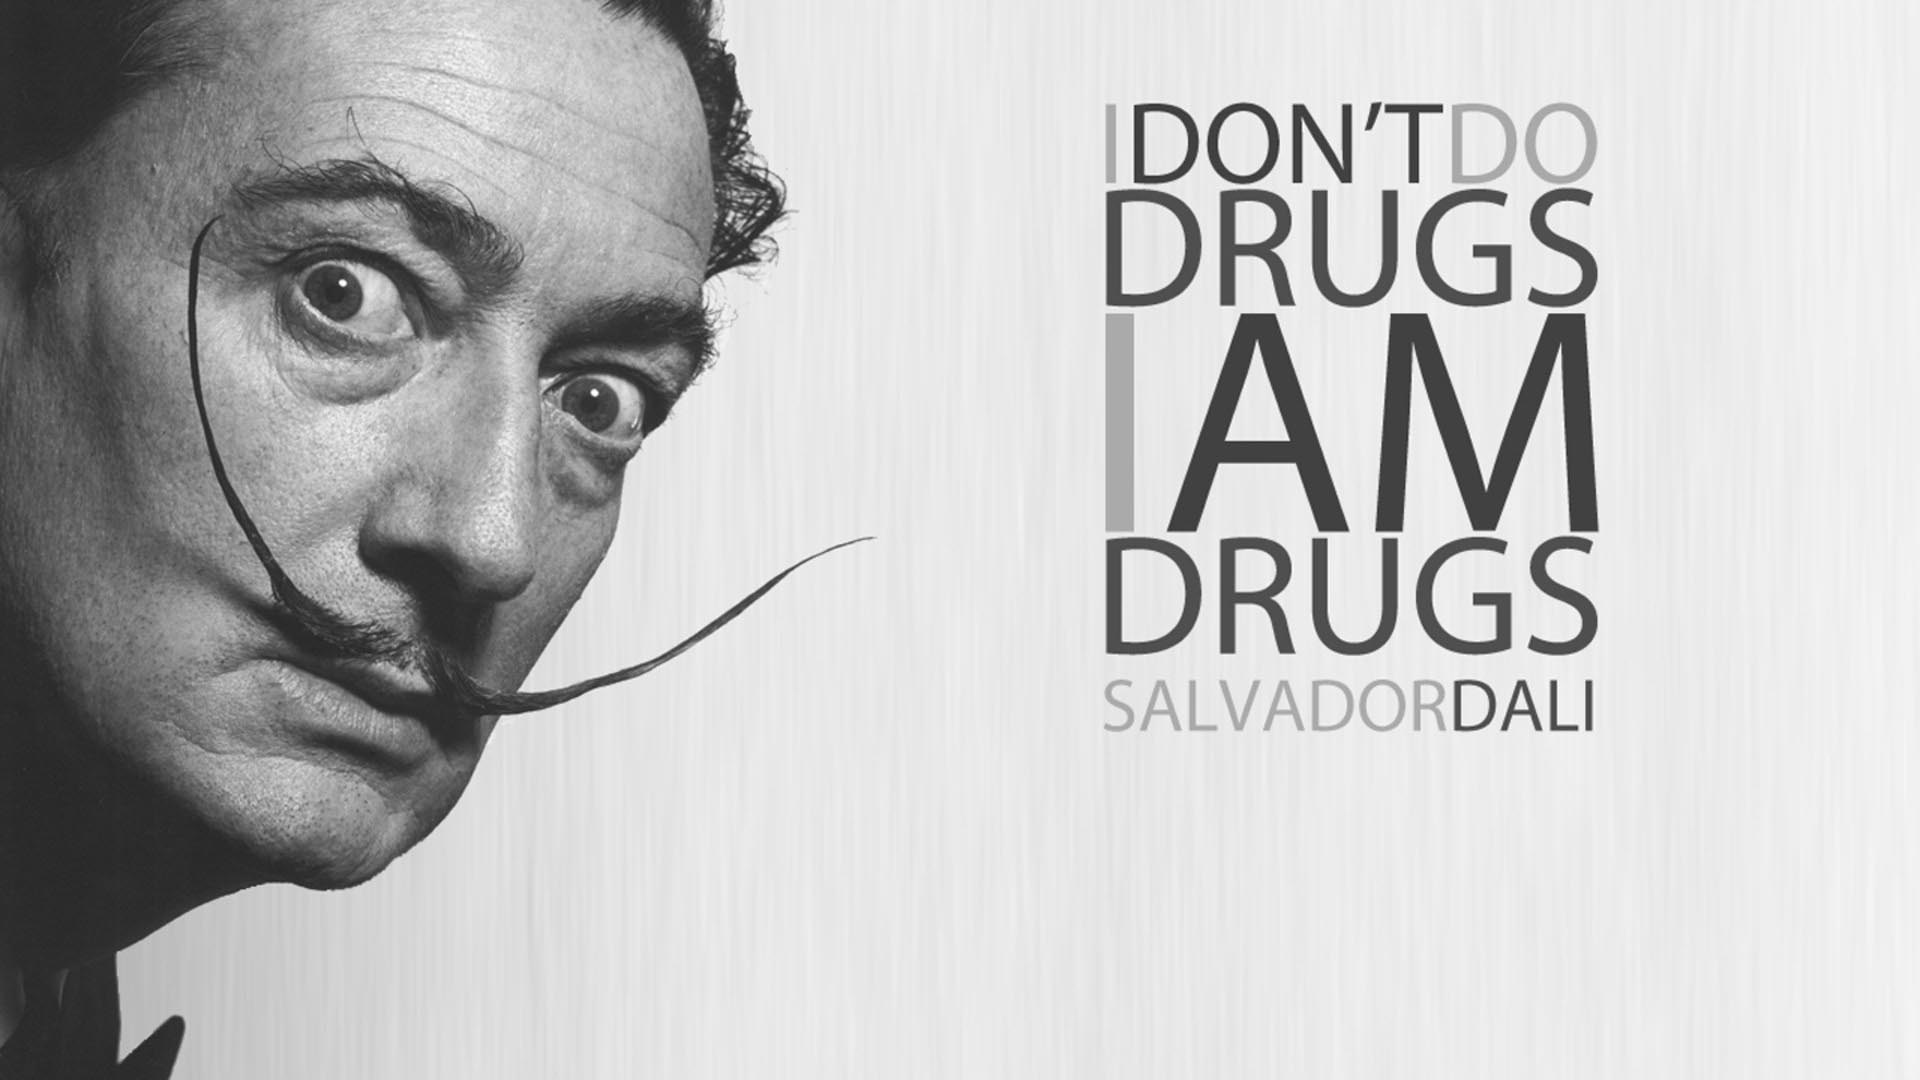 Salvador Dali Quote HD Wallpaper » FullHDWpp - Full HD Wallpapers ...